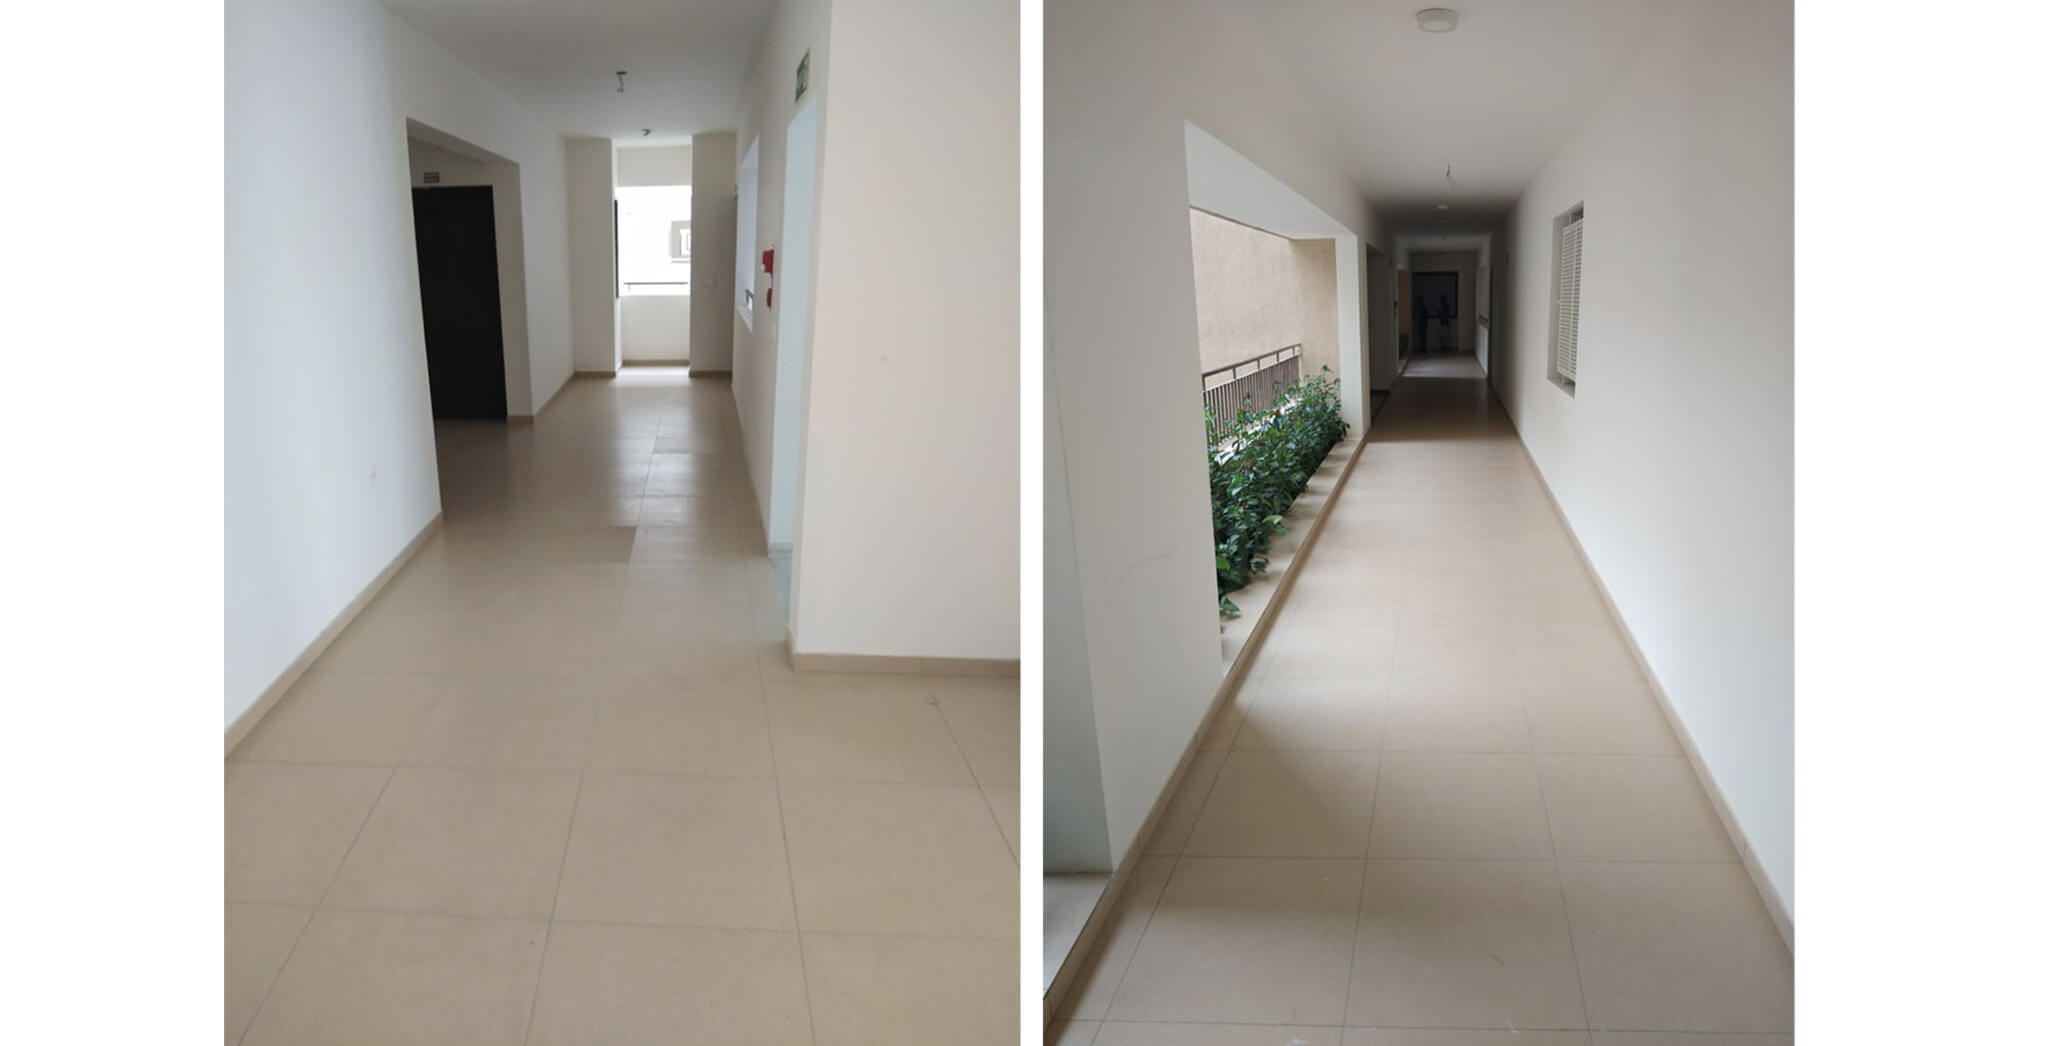 A block: Corridor–Final coat, painting completed